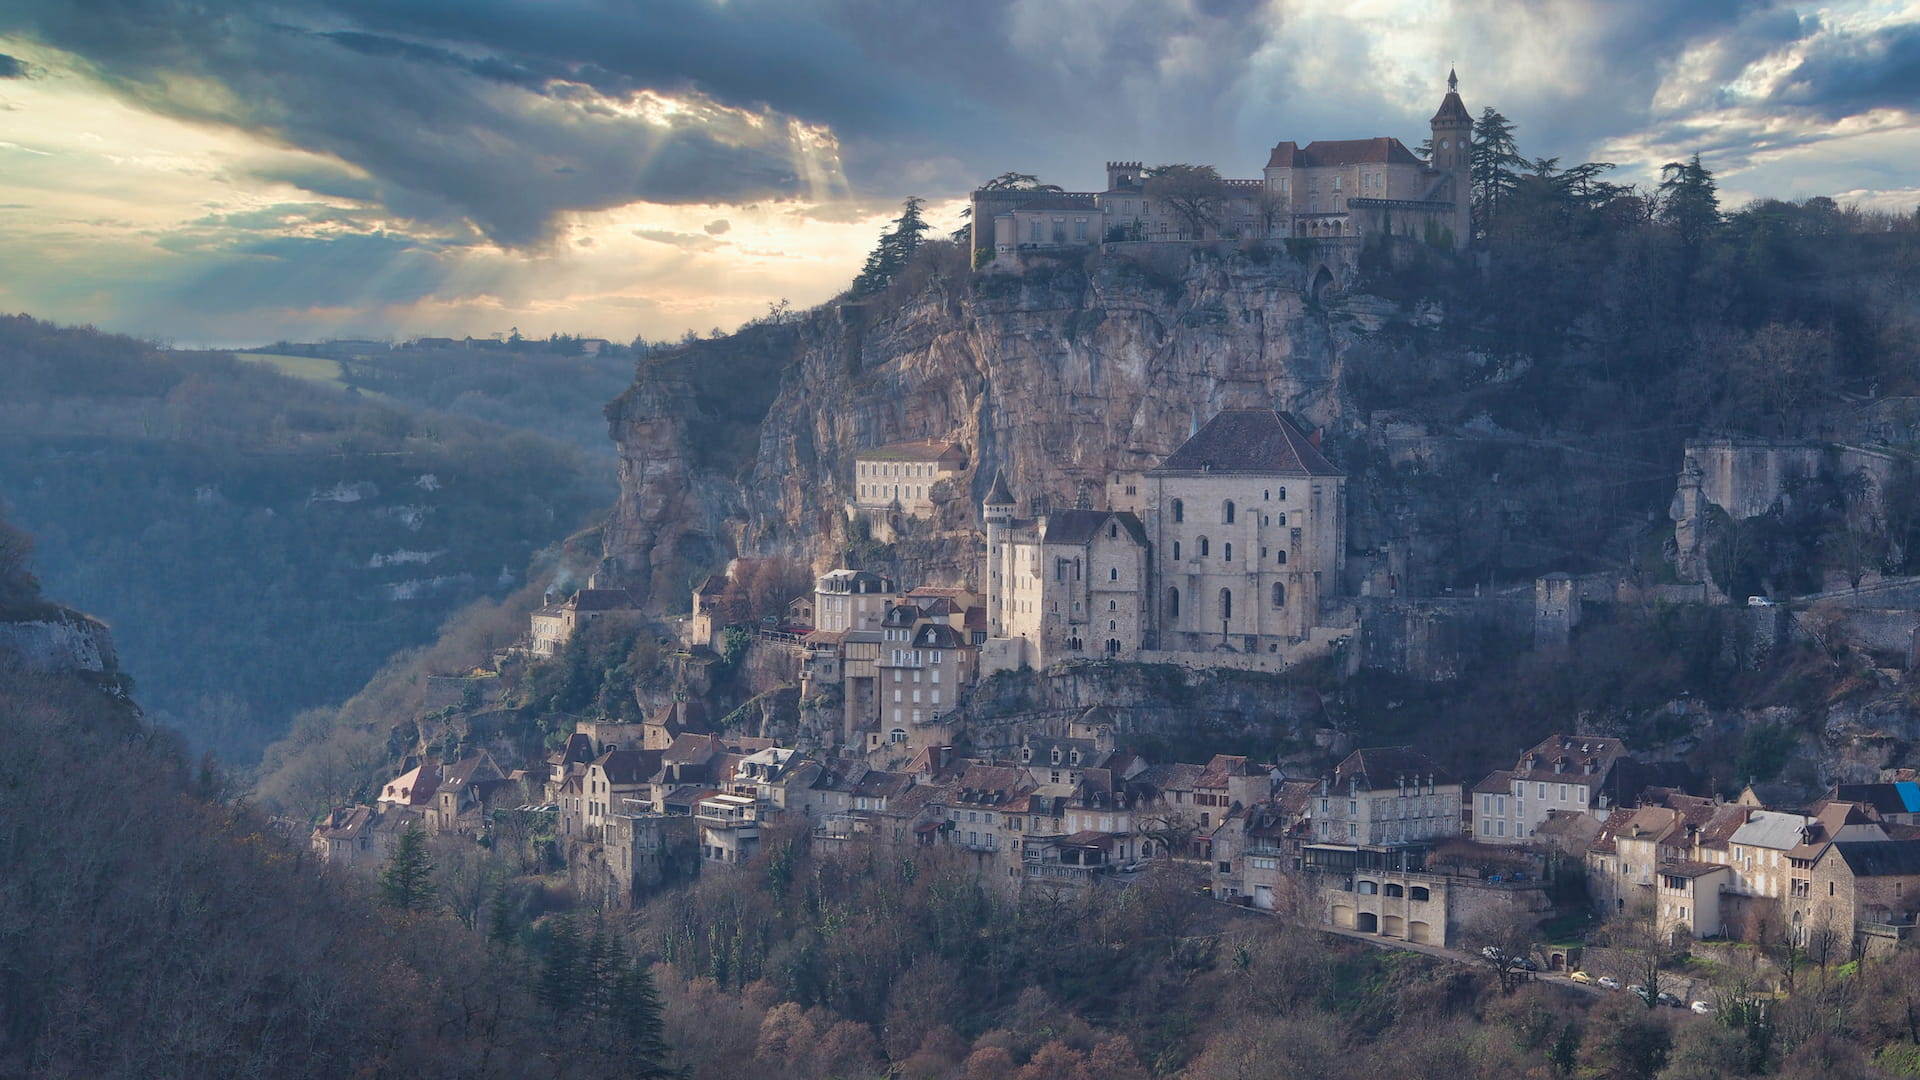 Stone houses cling to a hillside with a castle at the top, cloudy skies